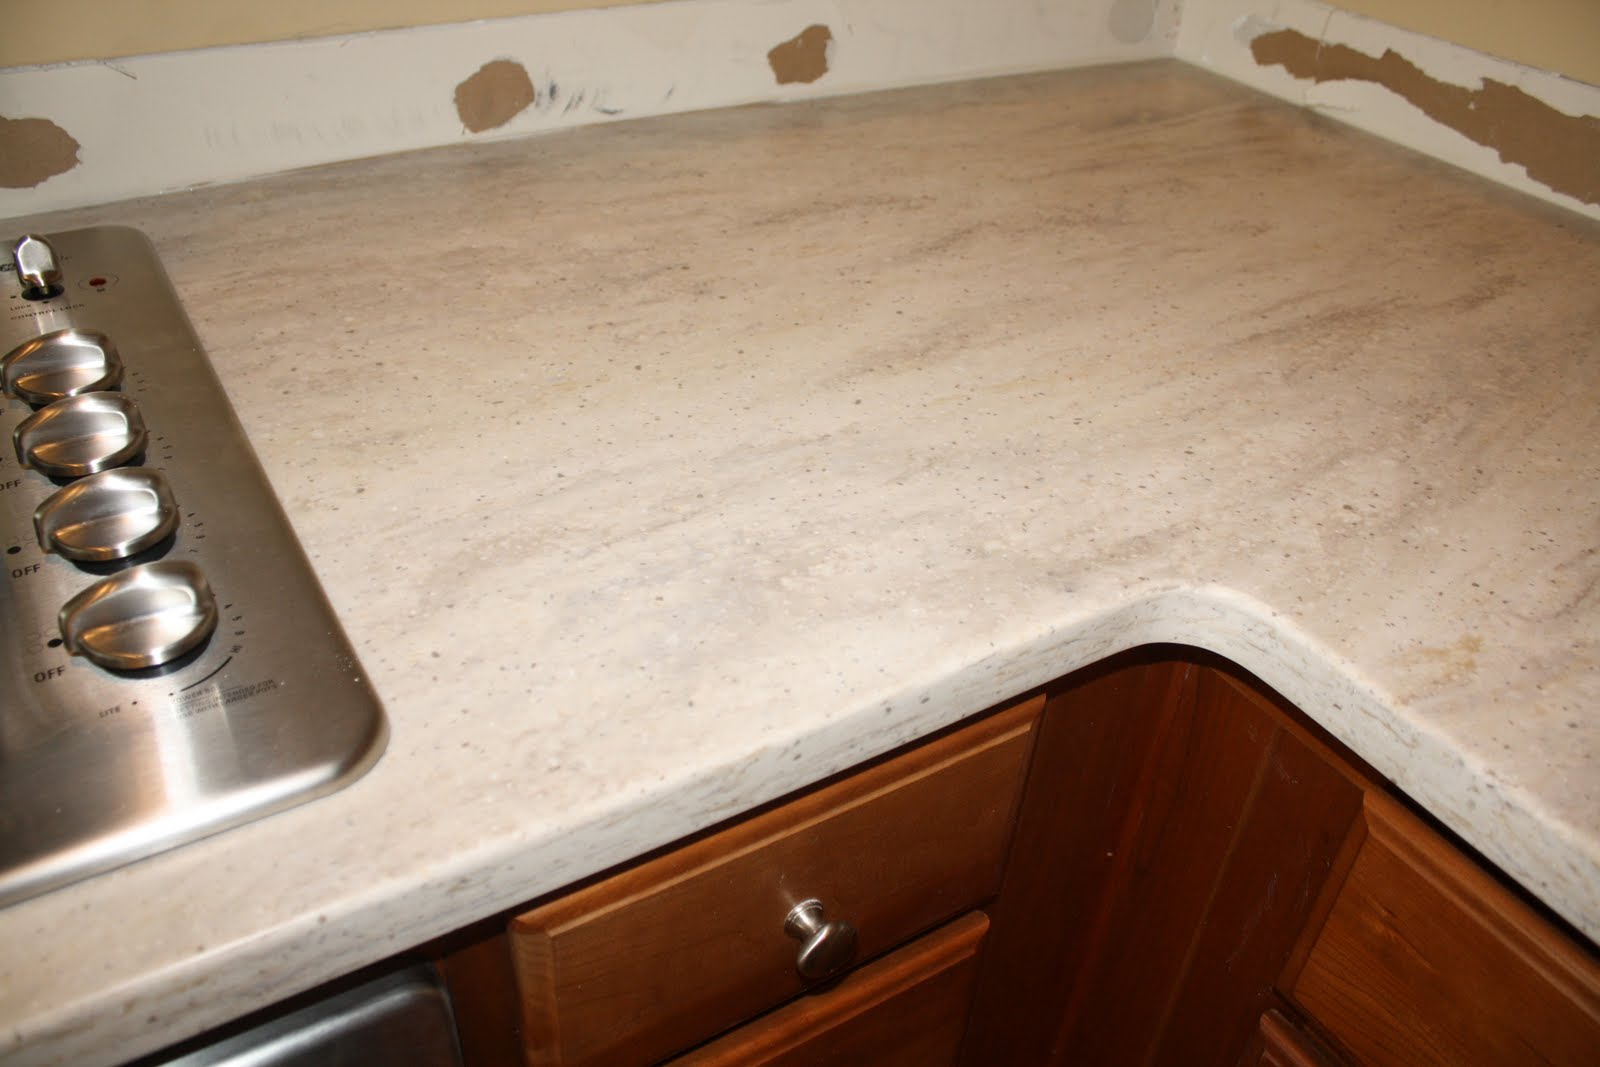 How To Refurbish Countertops Restoring Corian Countertops Home Improvement